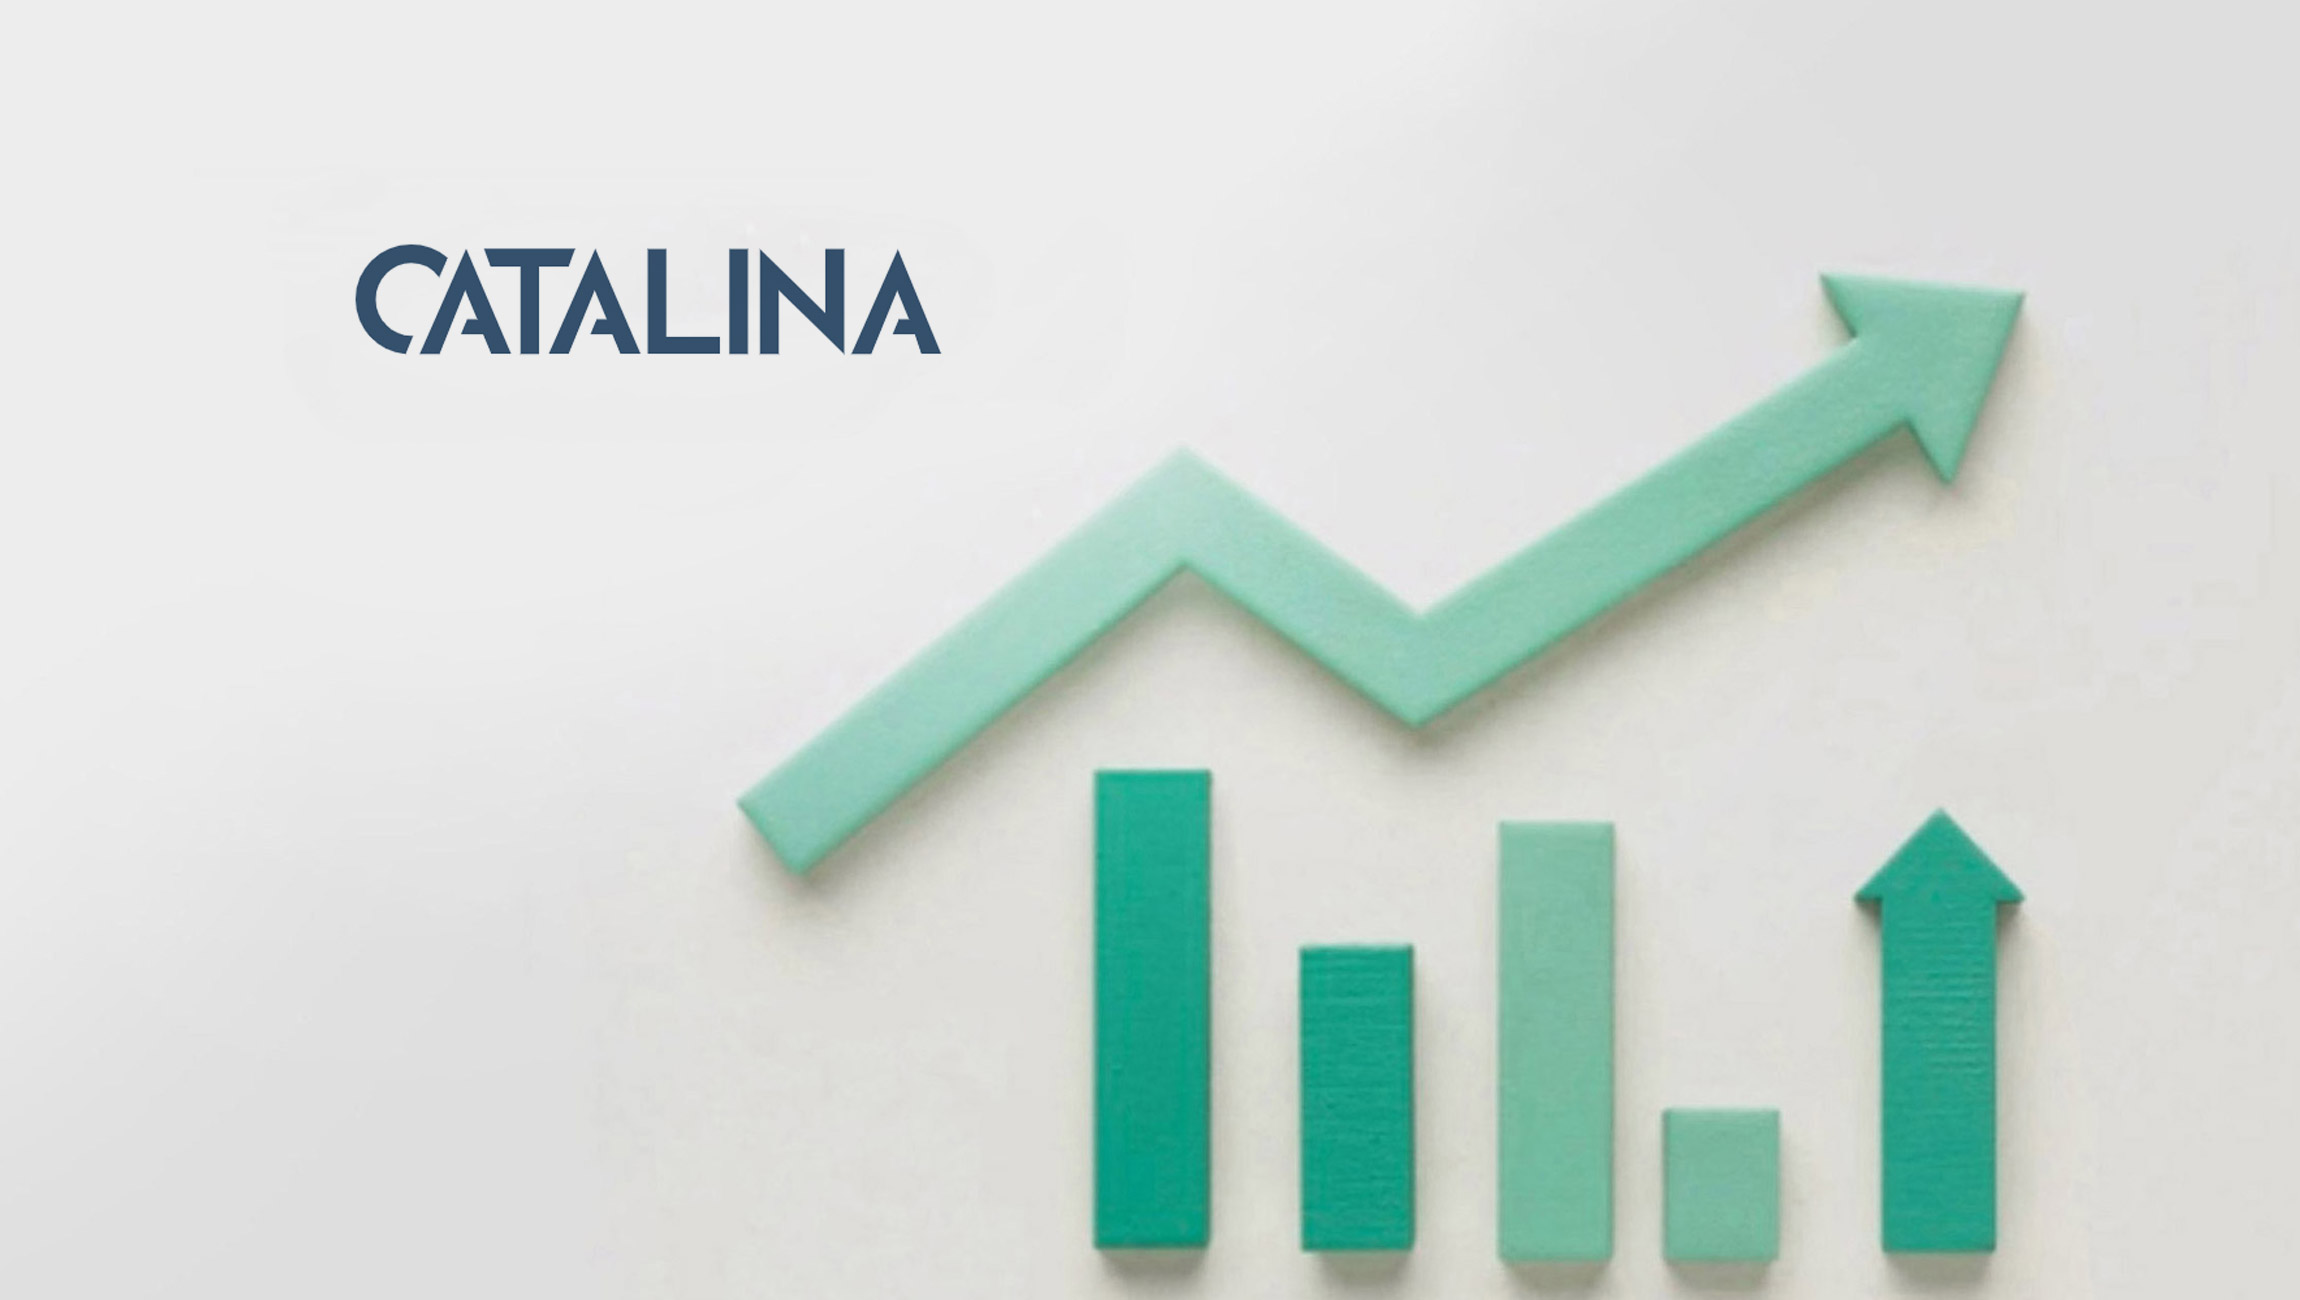 """Catalina Launches """"Catalina Compass'' to Accelerate Retailers' Revenue Growth through their Media Networks"""